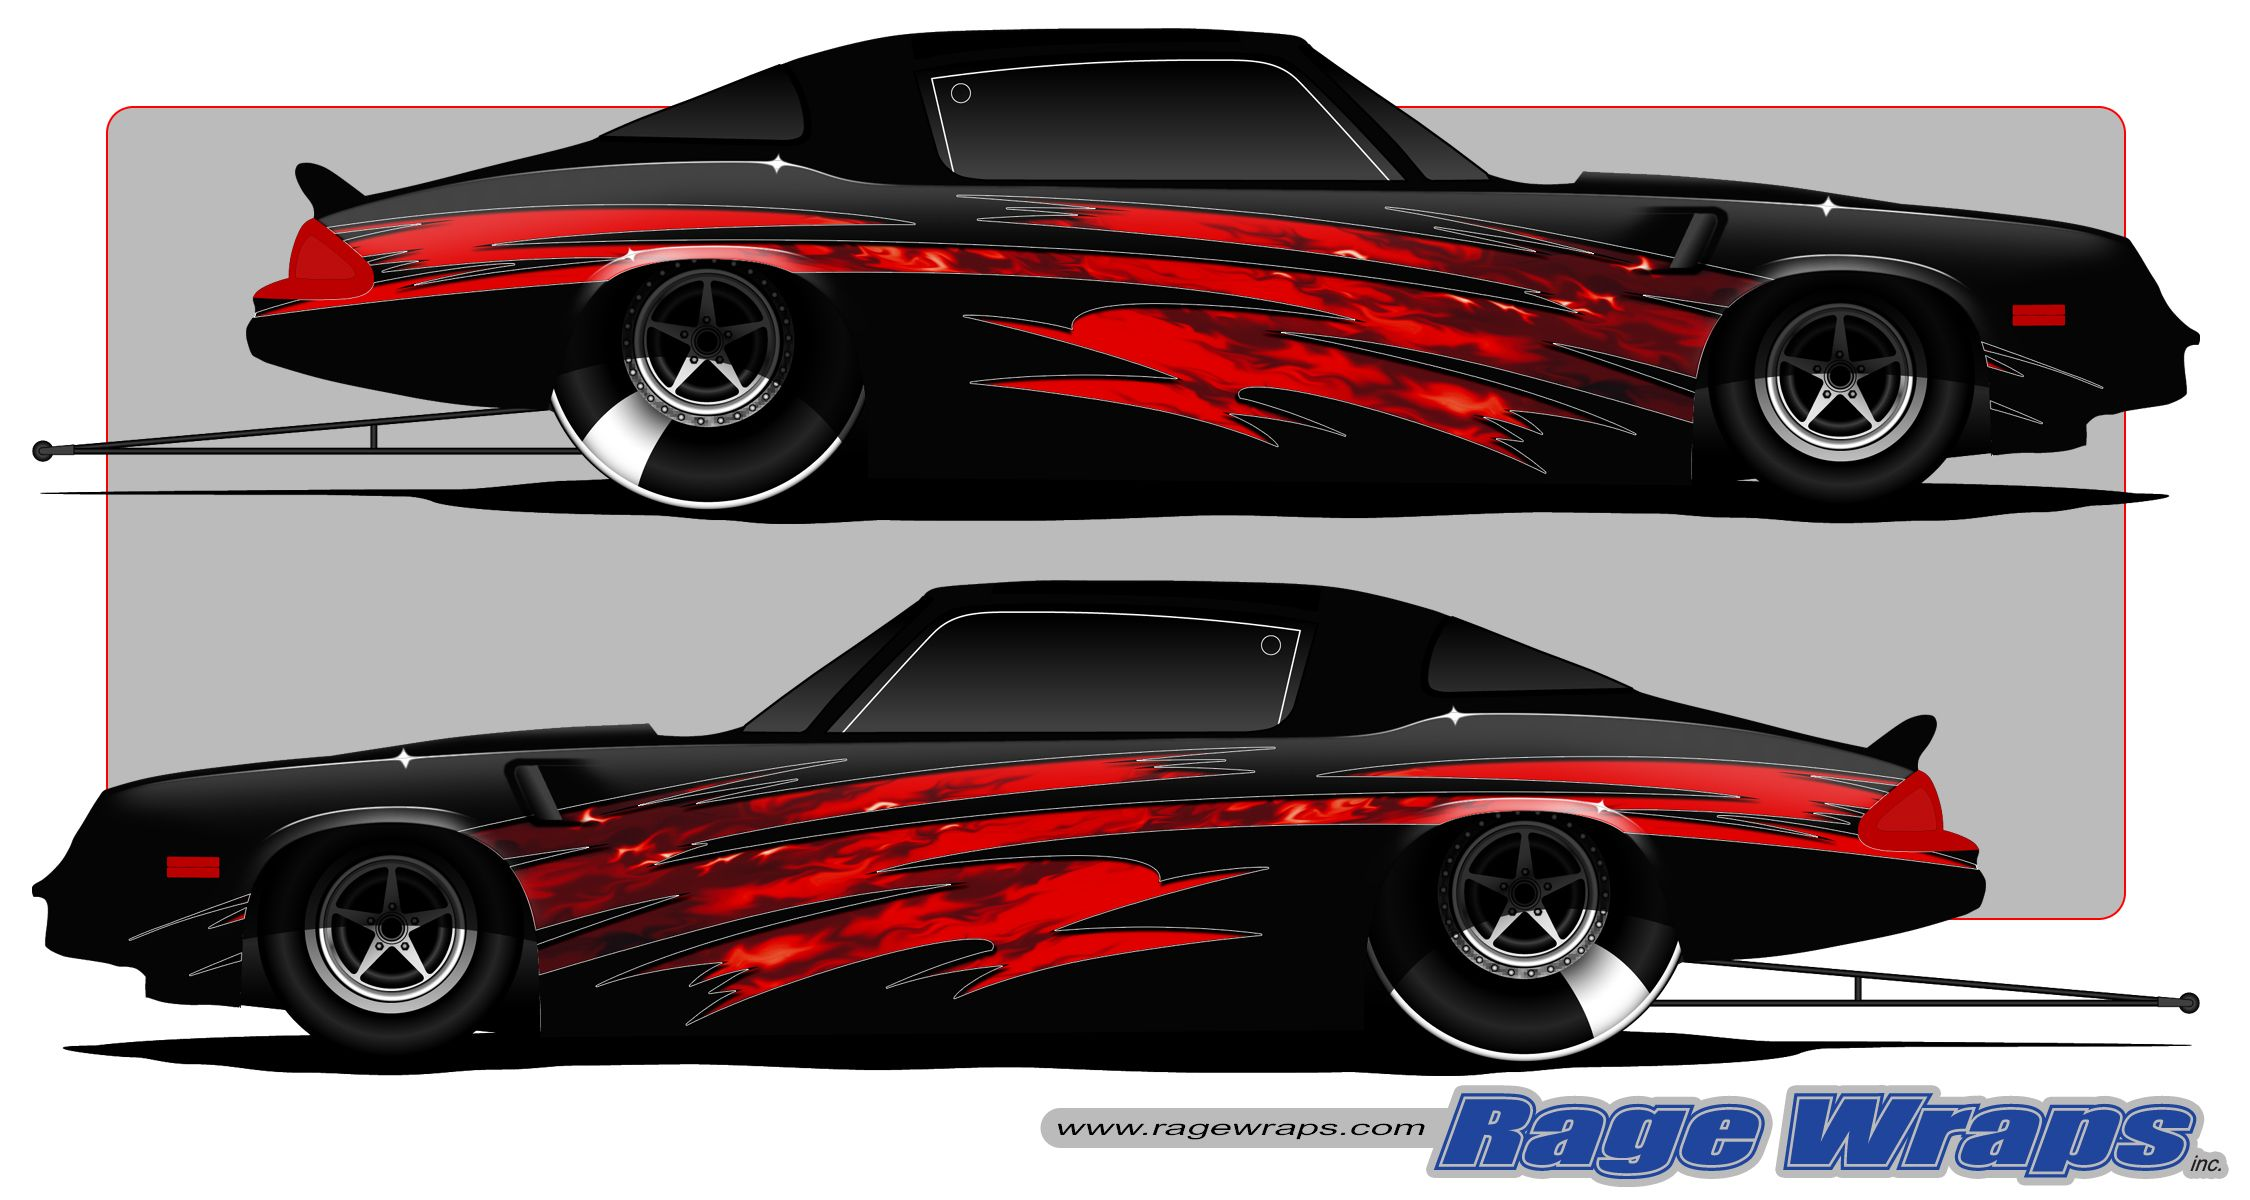 Vinyl Car Wrap Designs Car Paint Jobs Pinterest Car Wrap - Car sticker designimpressive wrap decal design for car car design